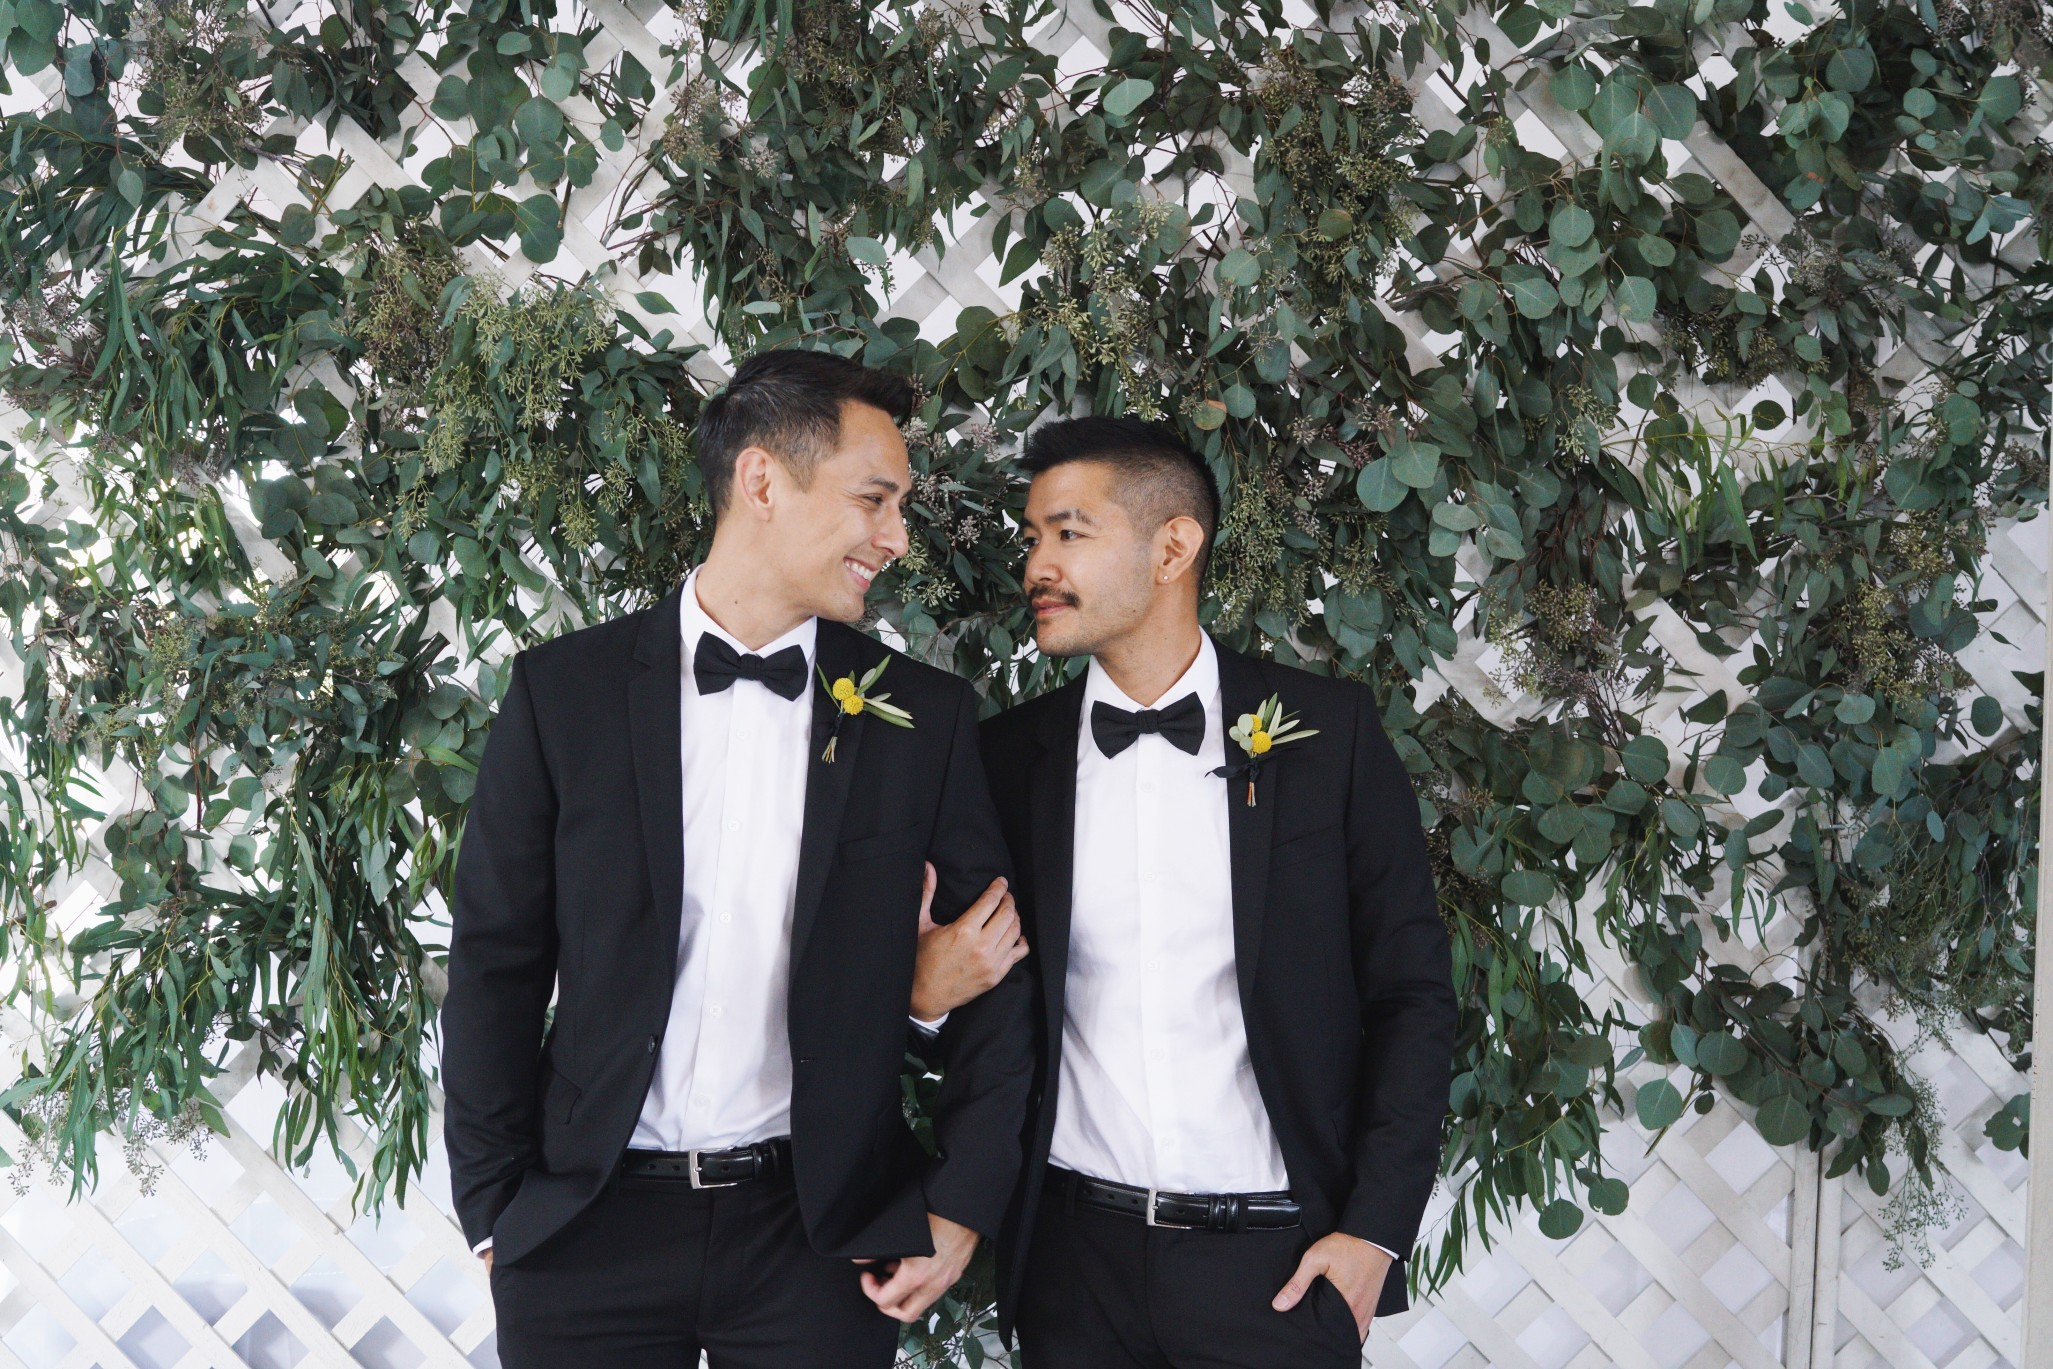 from Declan certify financial planner for gay couple